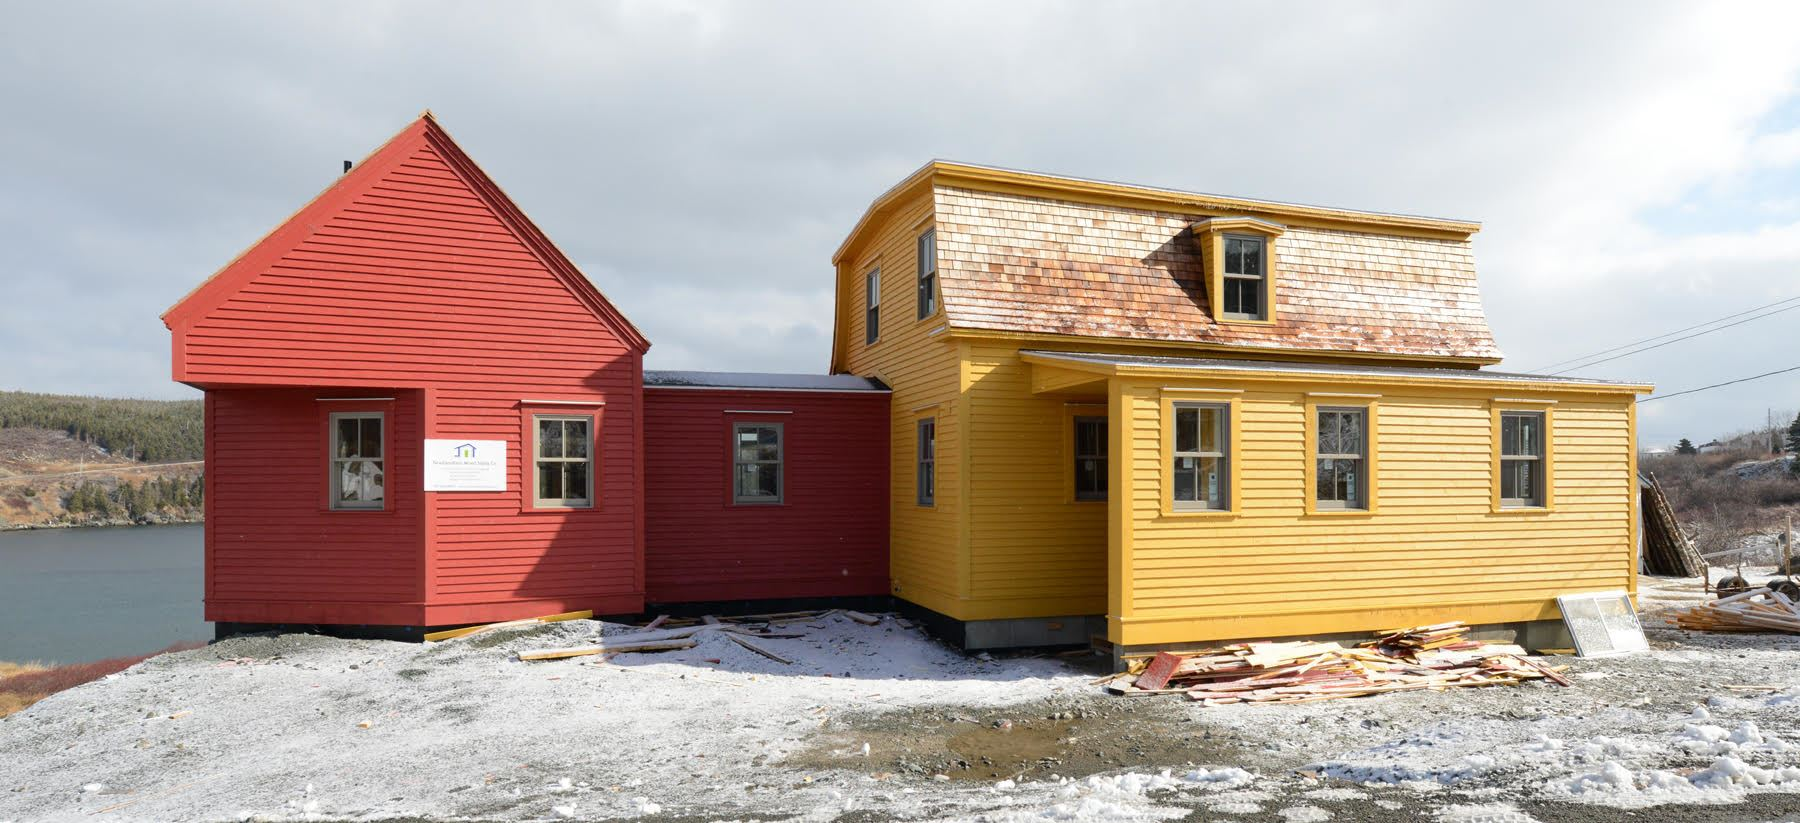 Restoration of the Keough Homestead in Calvert, Newfoundland a new addition for a studiobedroom was added to the east side of the house, painted with the red ochre colour typically used for outbuildings. Photo courtesy of Robert Mellin